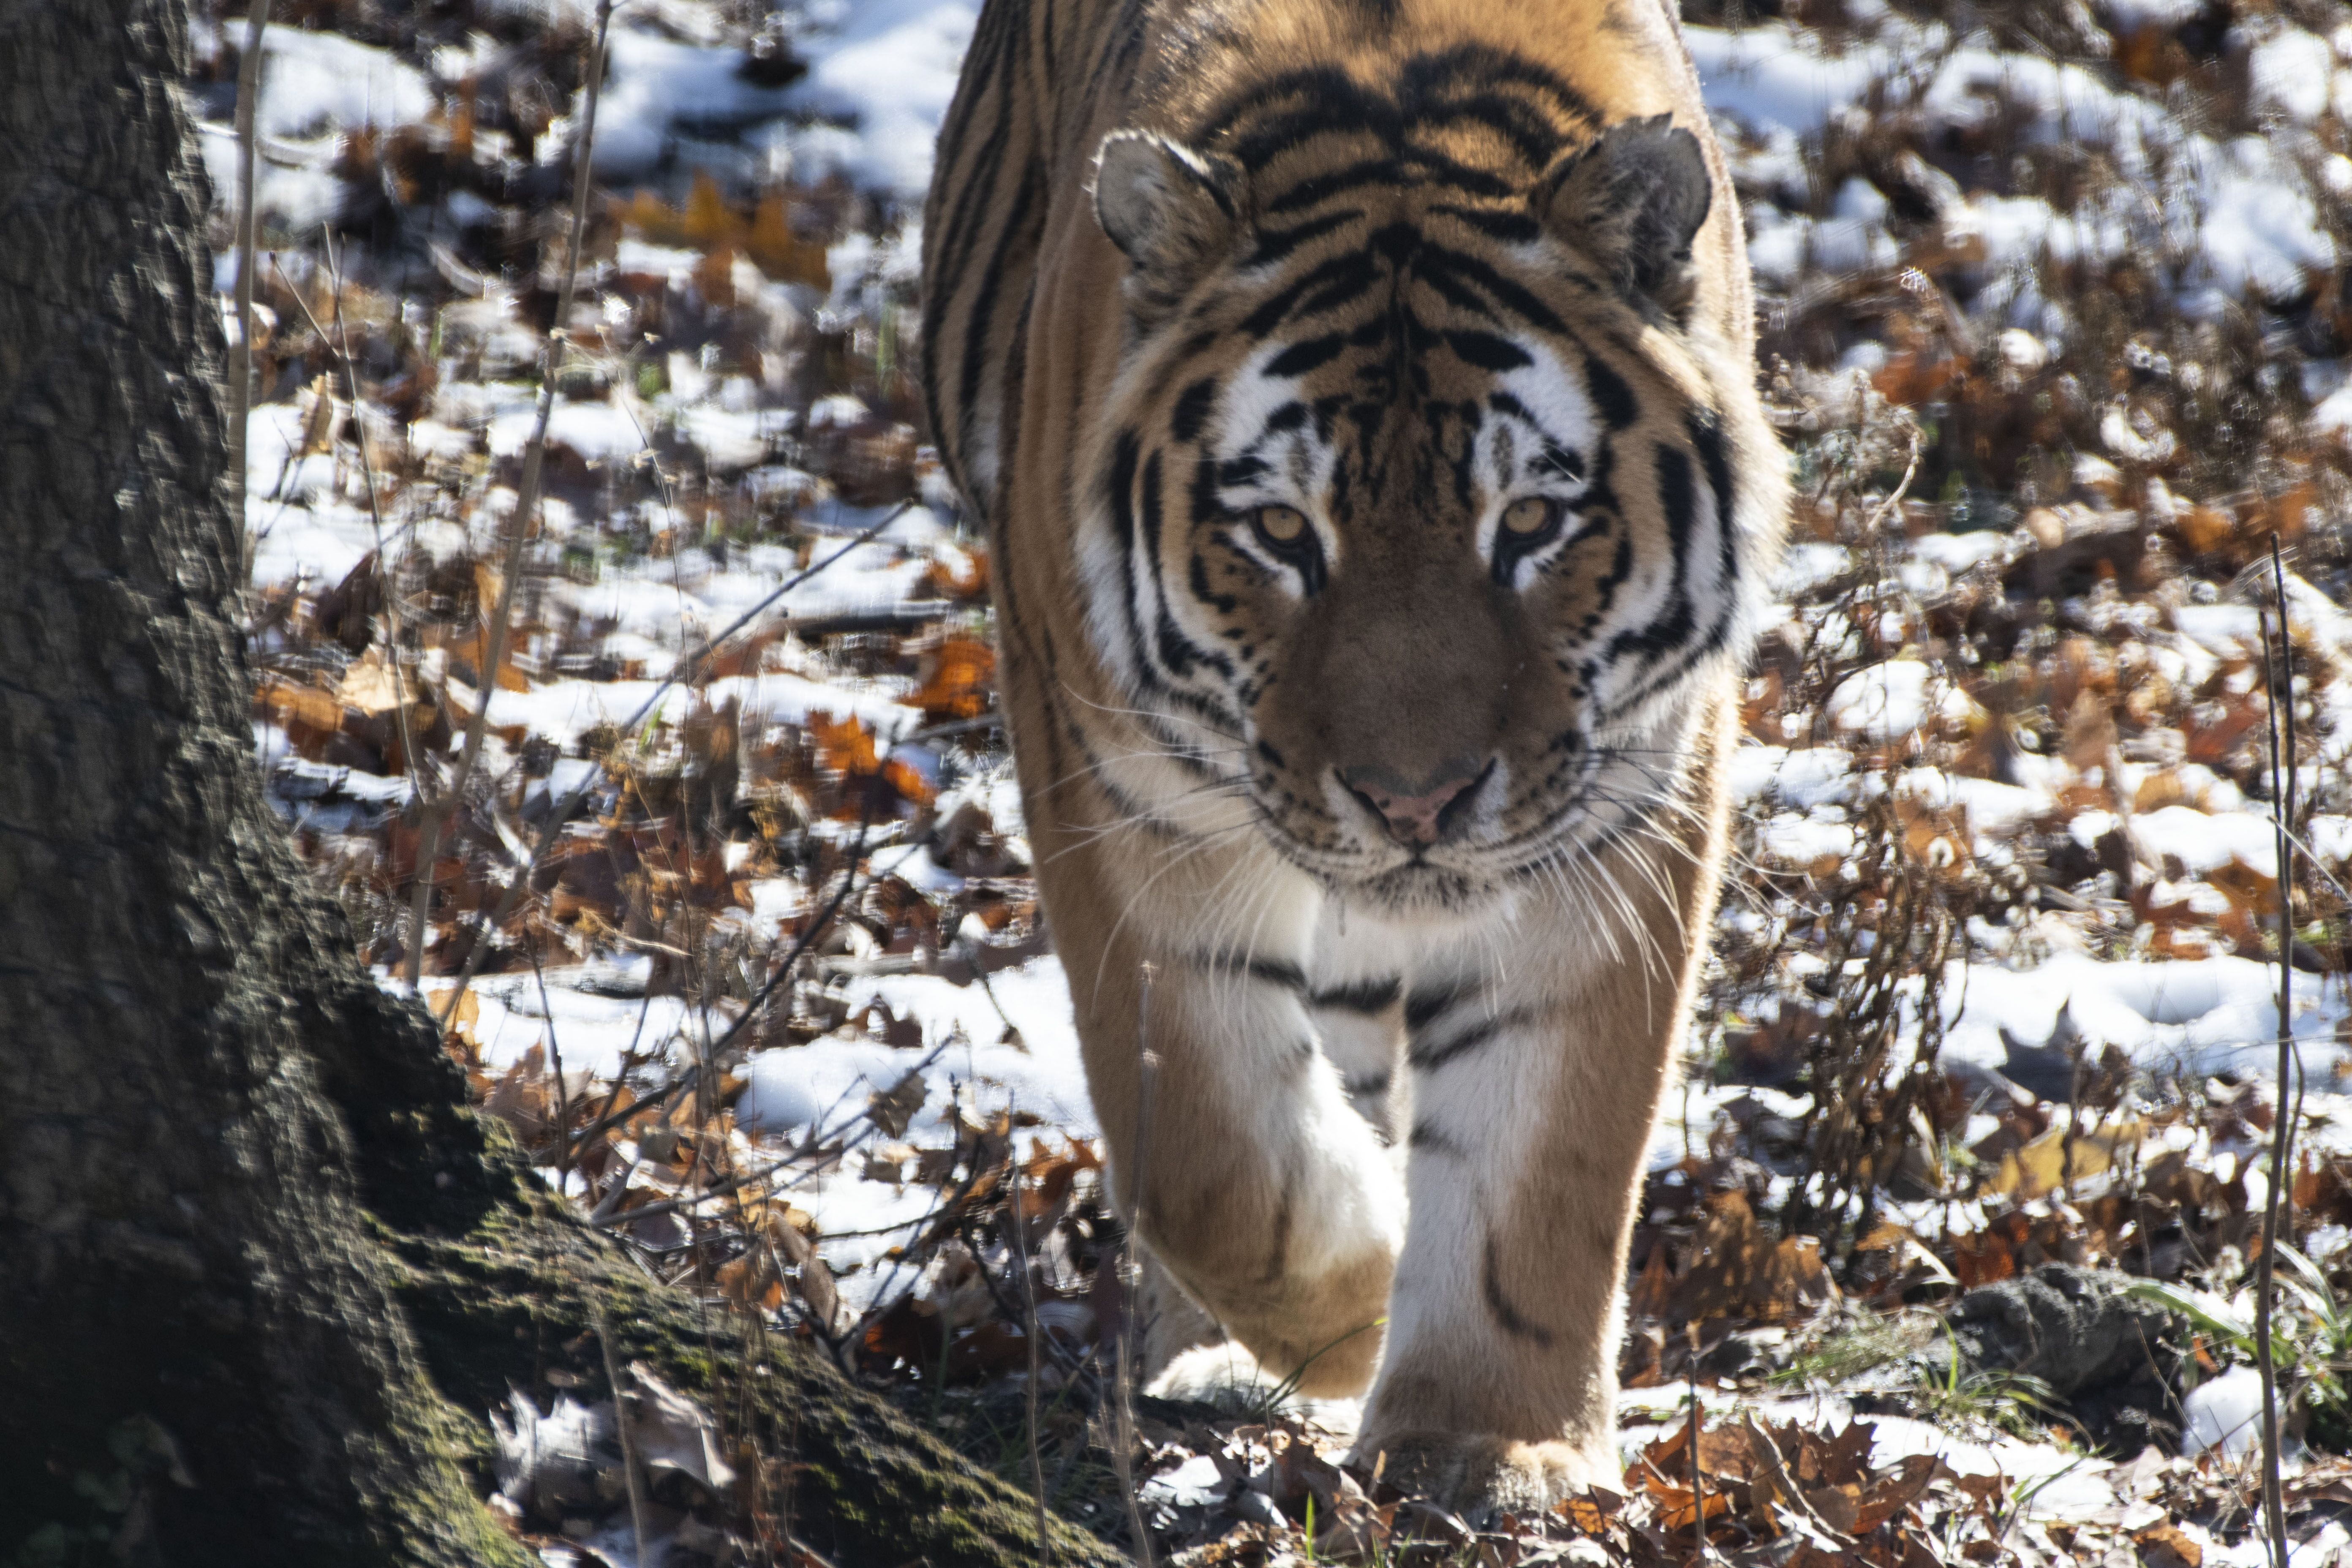 Tigers return to the Syracuse zoo with new December arrival - syracuse.com